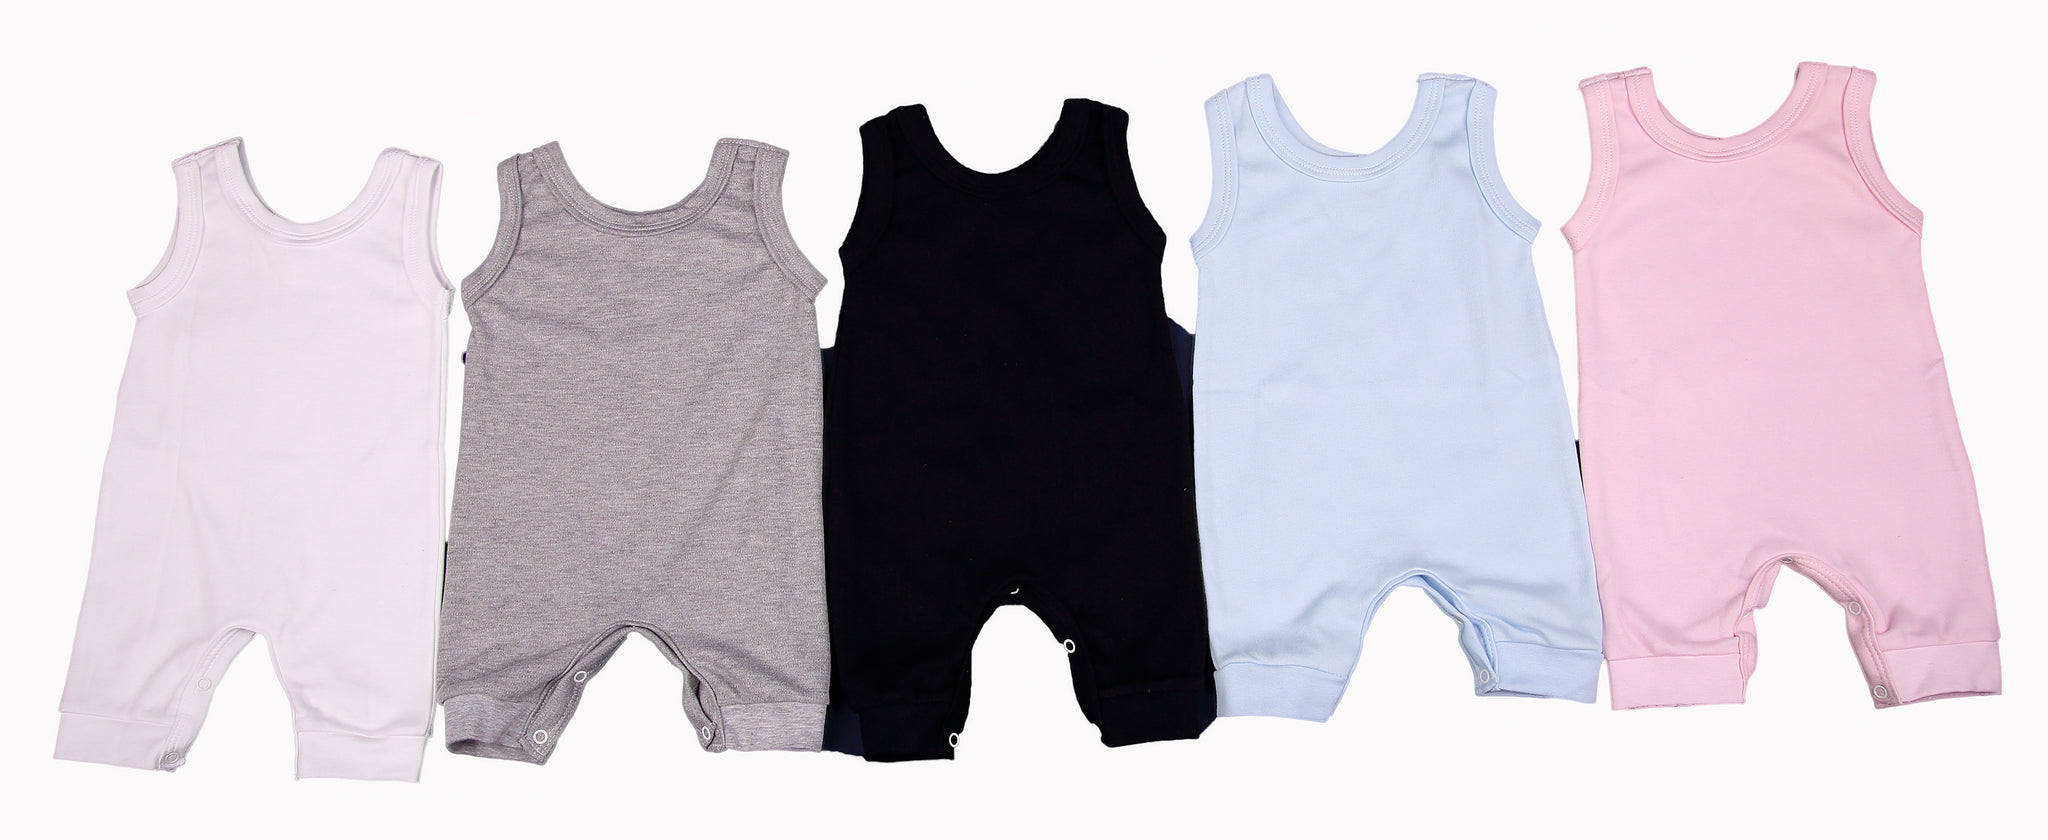 100% Cotton Blank Sleeveless Baby Rompers In Mixed Colours - Little Lumps